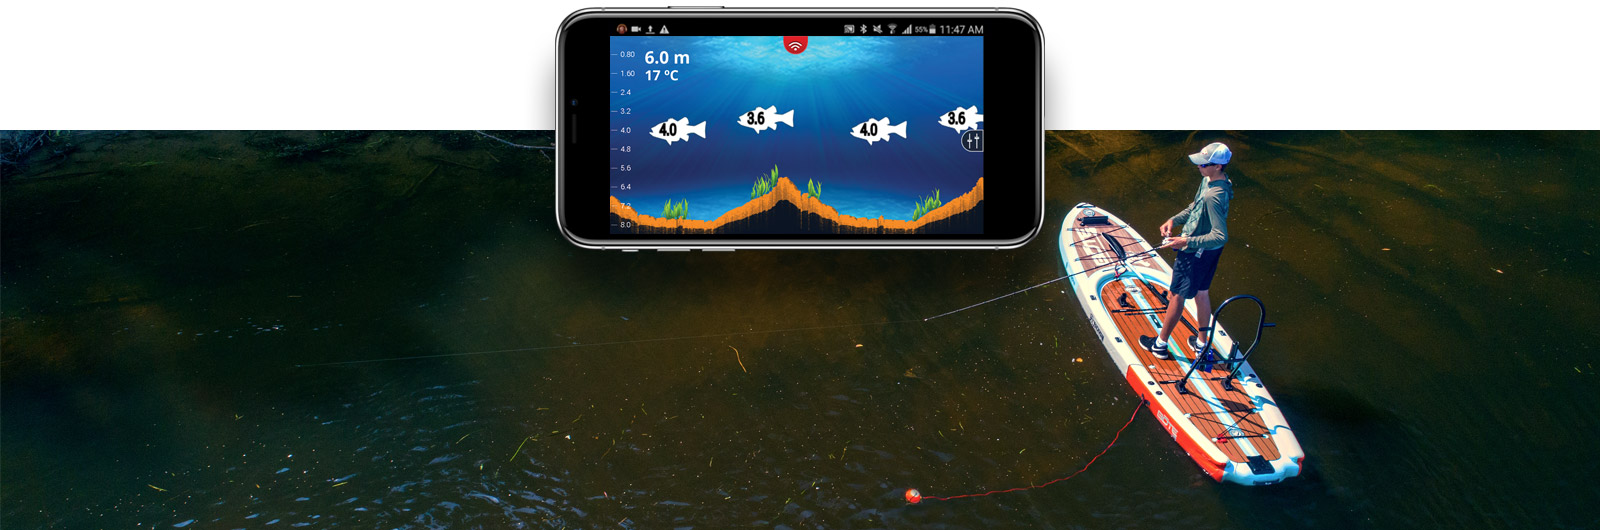 FishHunter_2_FW-phone.jpg